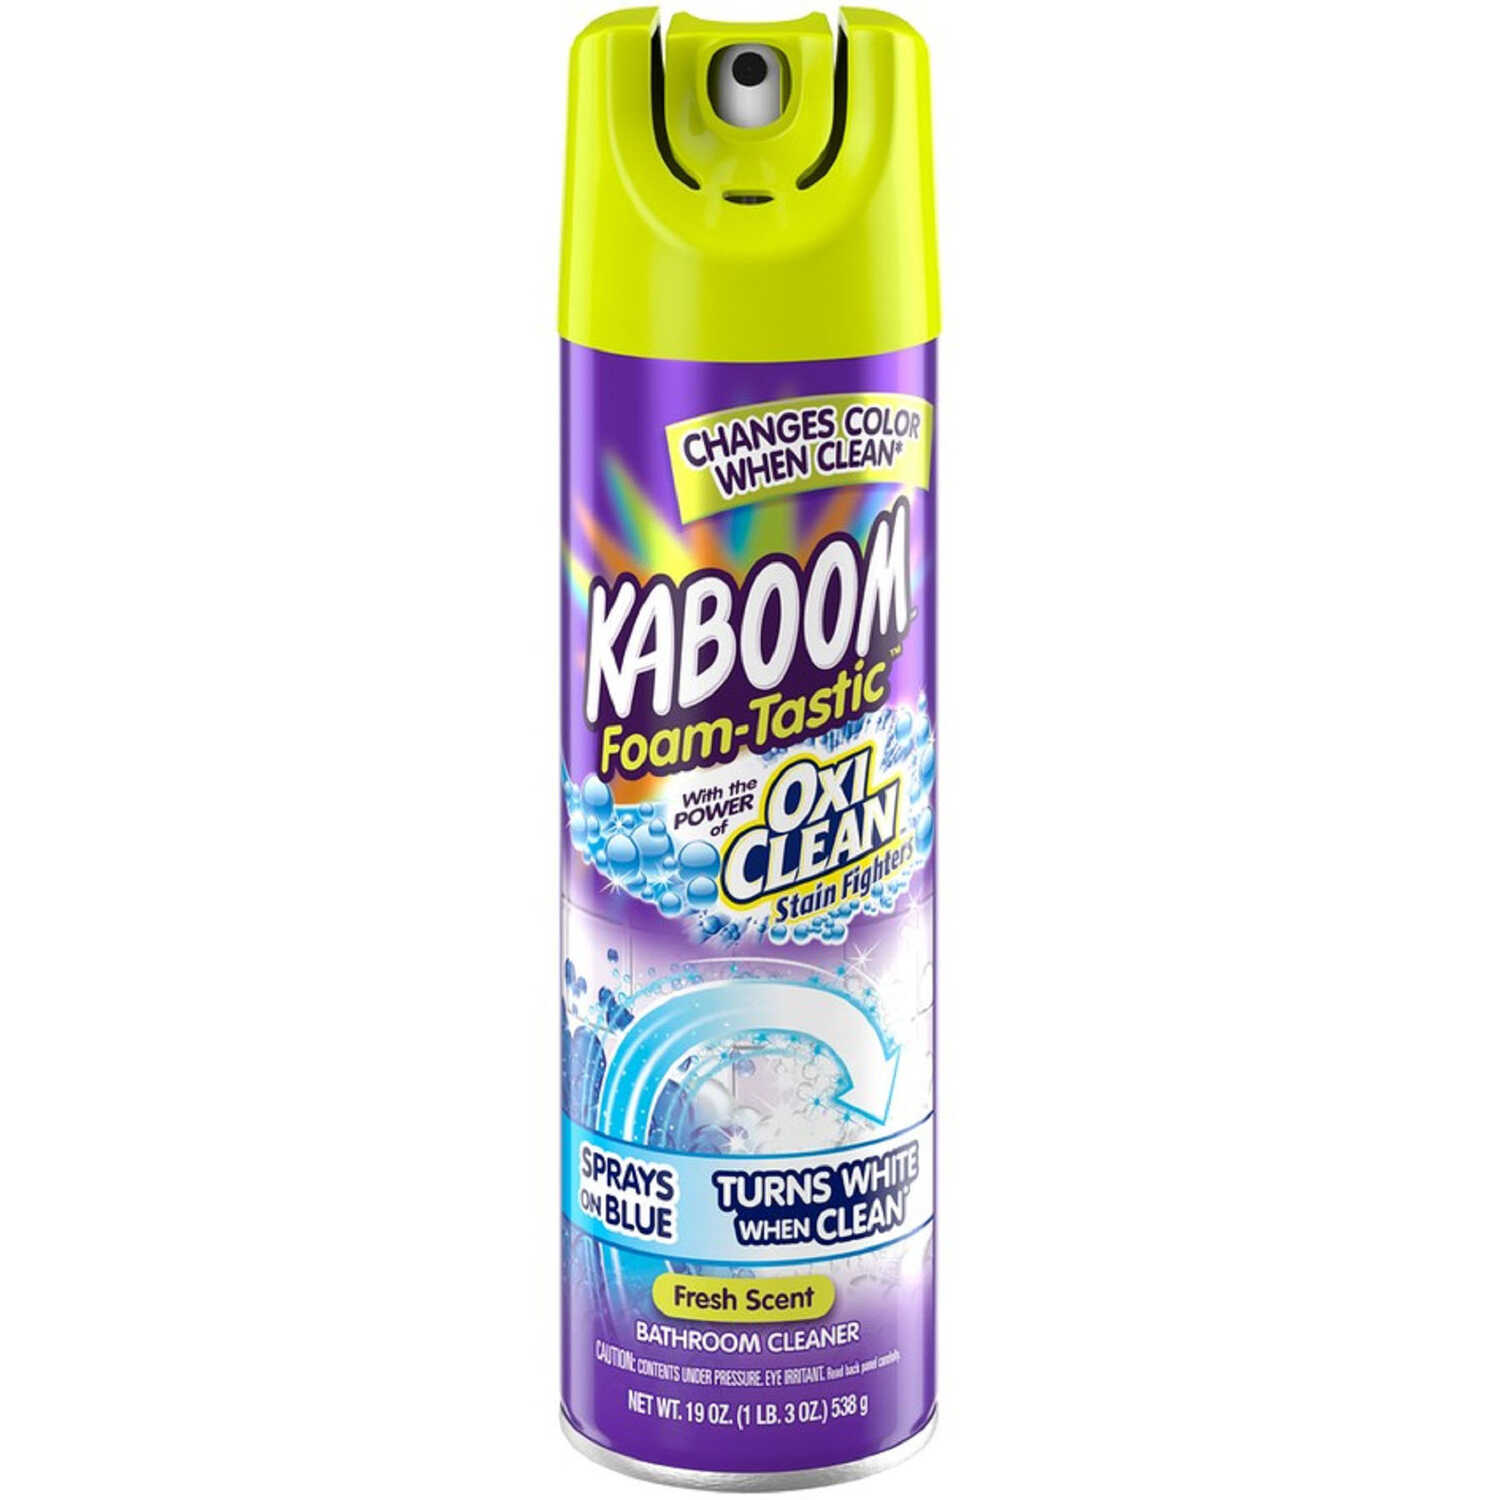 KABOOM  Foam-Tastic  Fresh Scent Bathroom Cleaner  19 oz. Foam